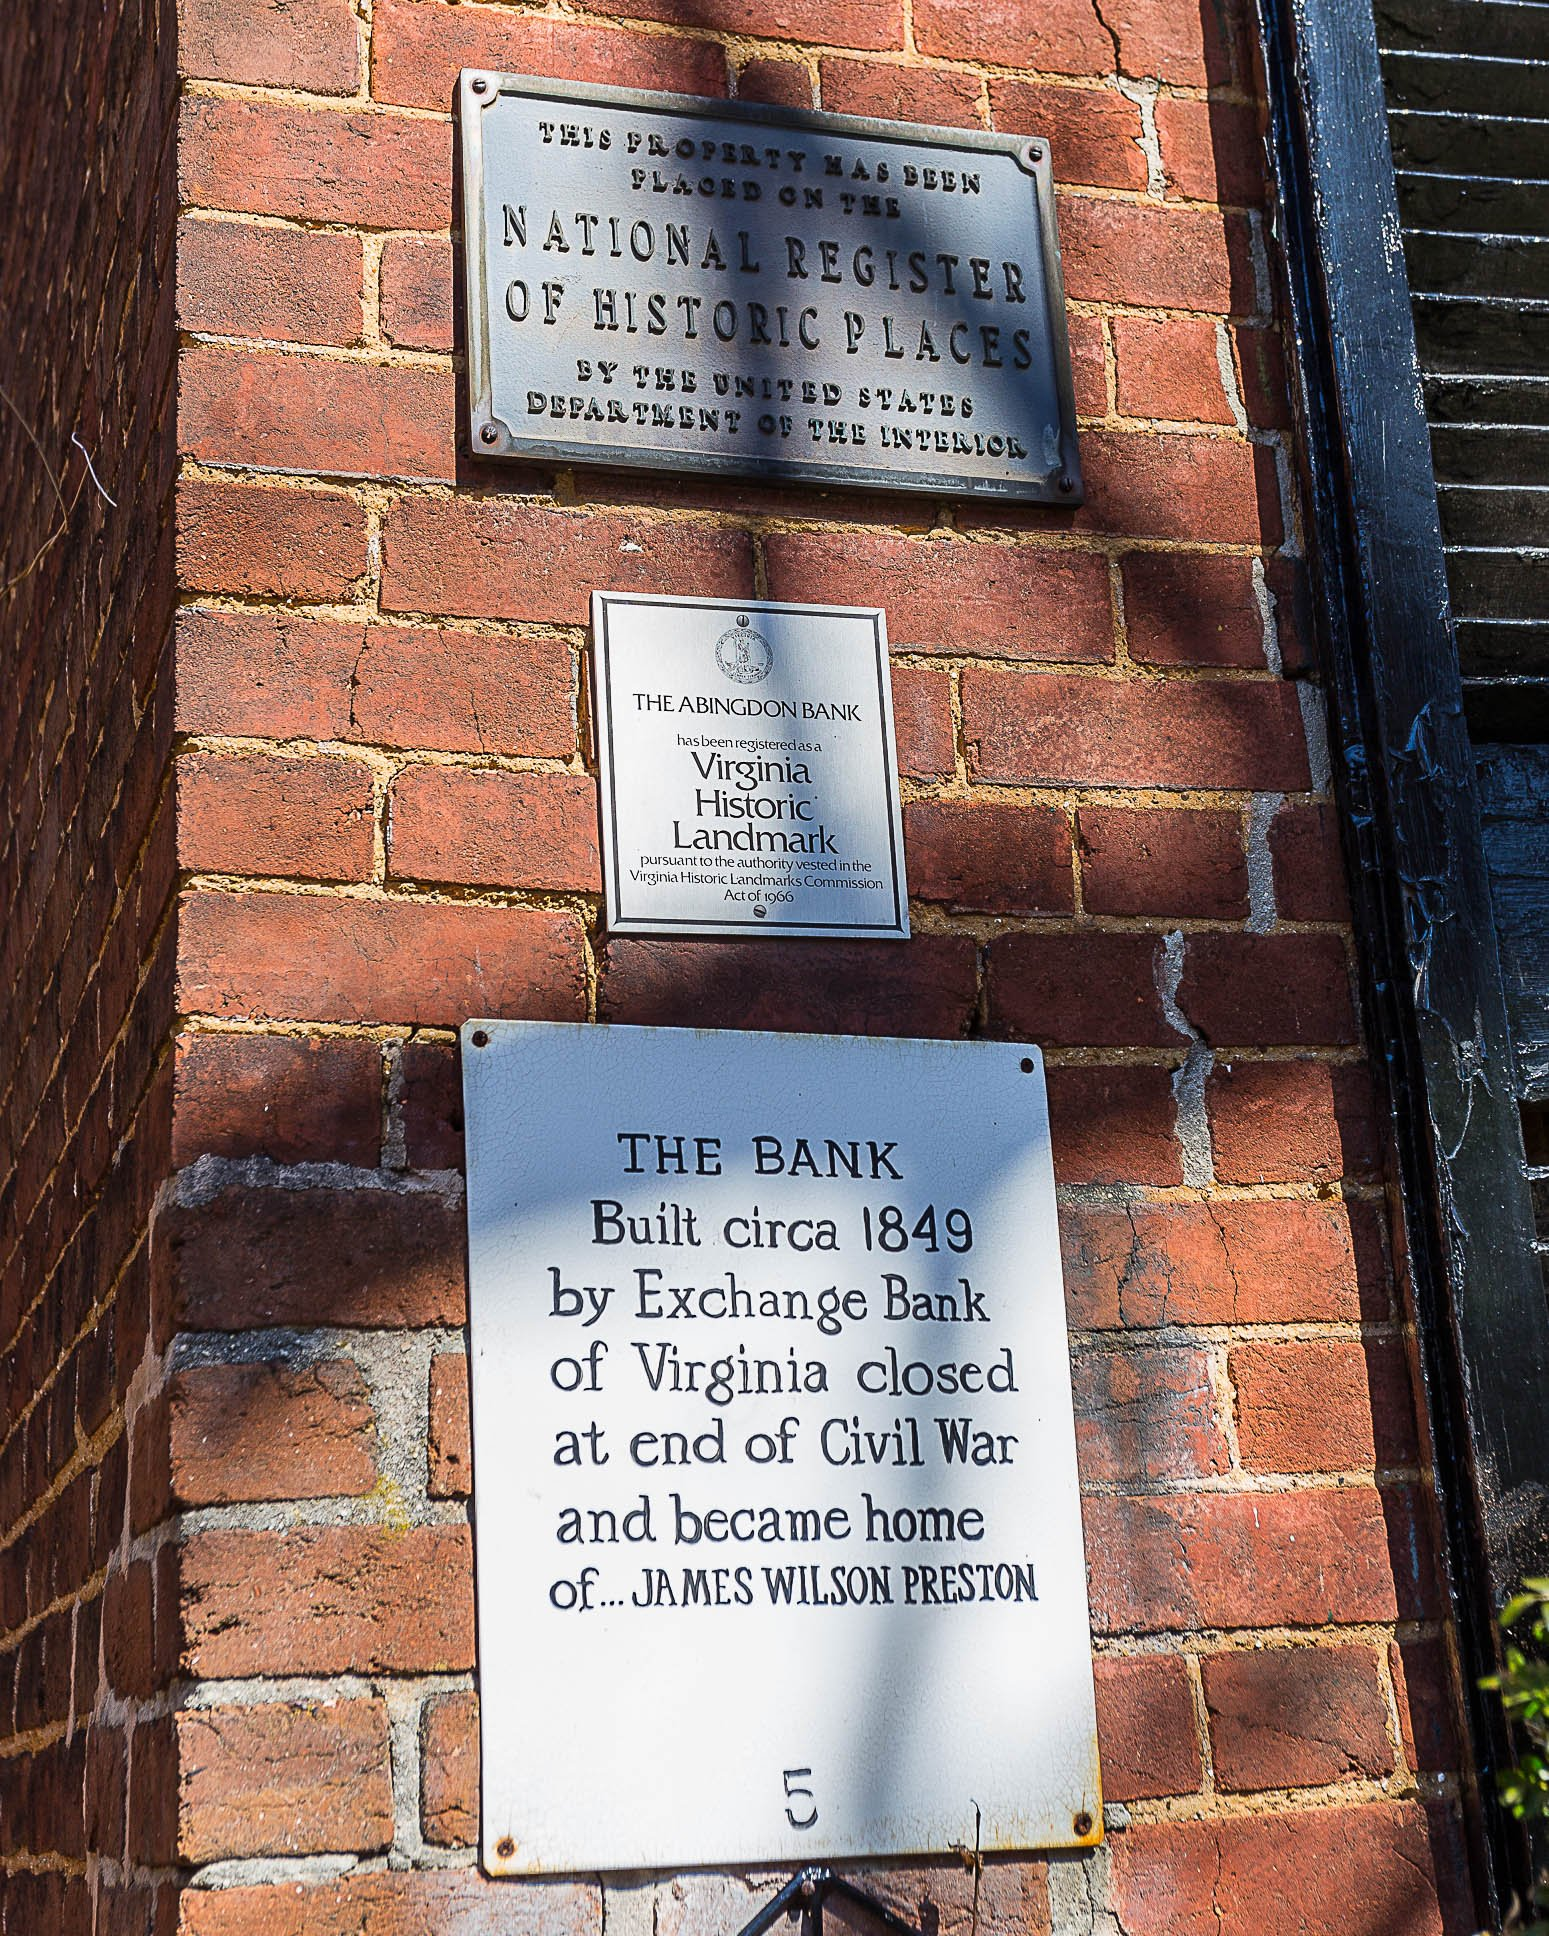 Historic plaques located on the Abingdon Bank building